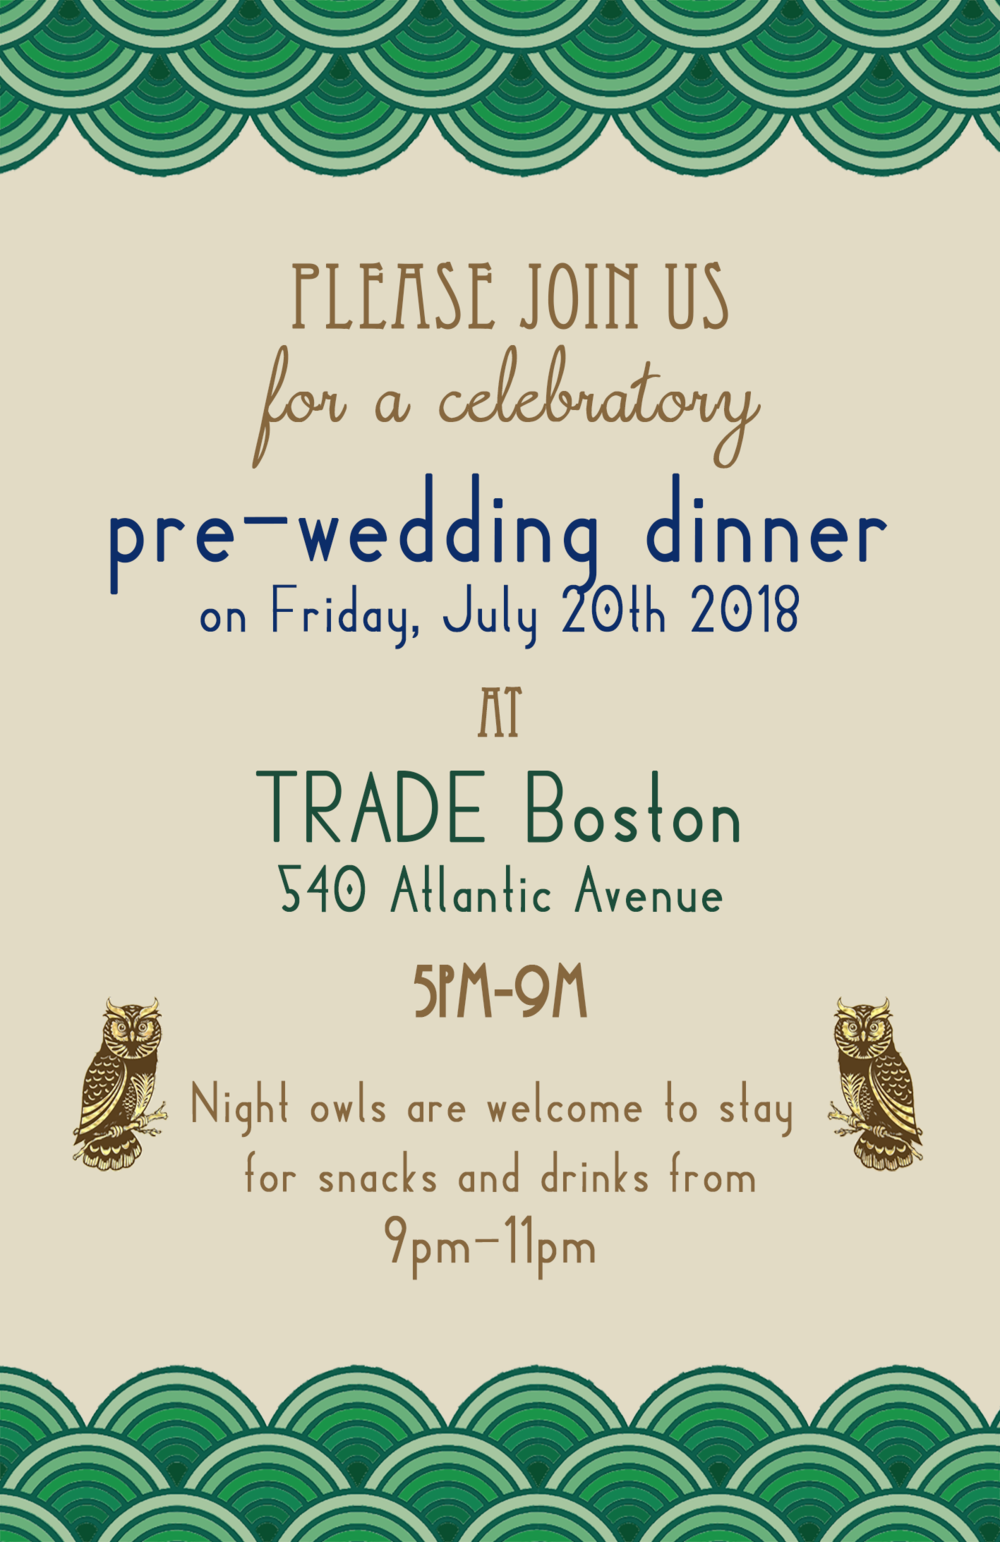 Rehearsal dinner invitation final.png